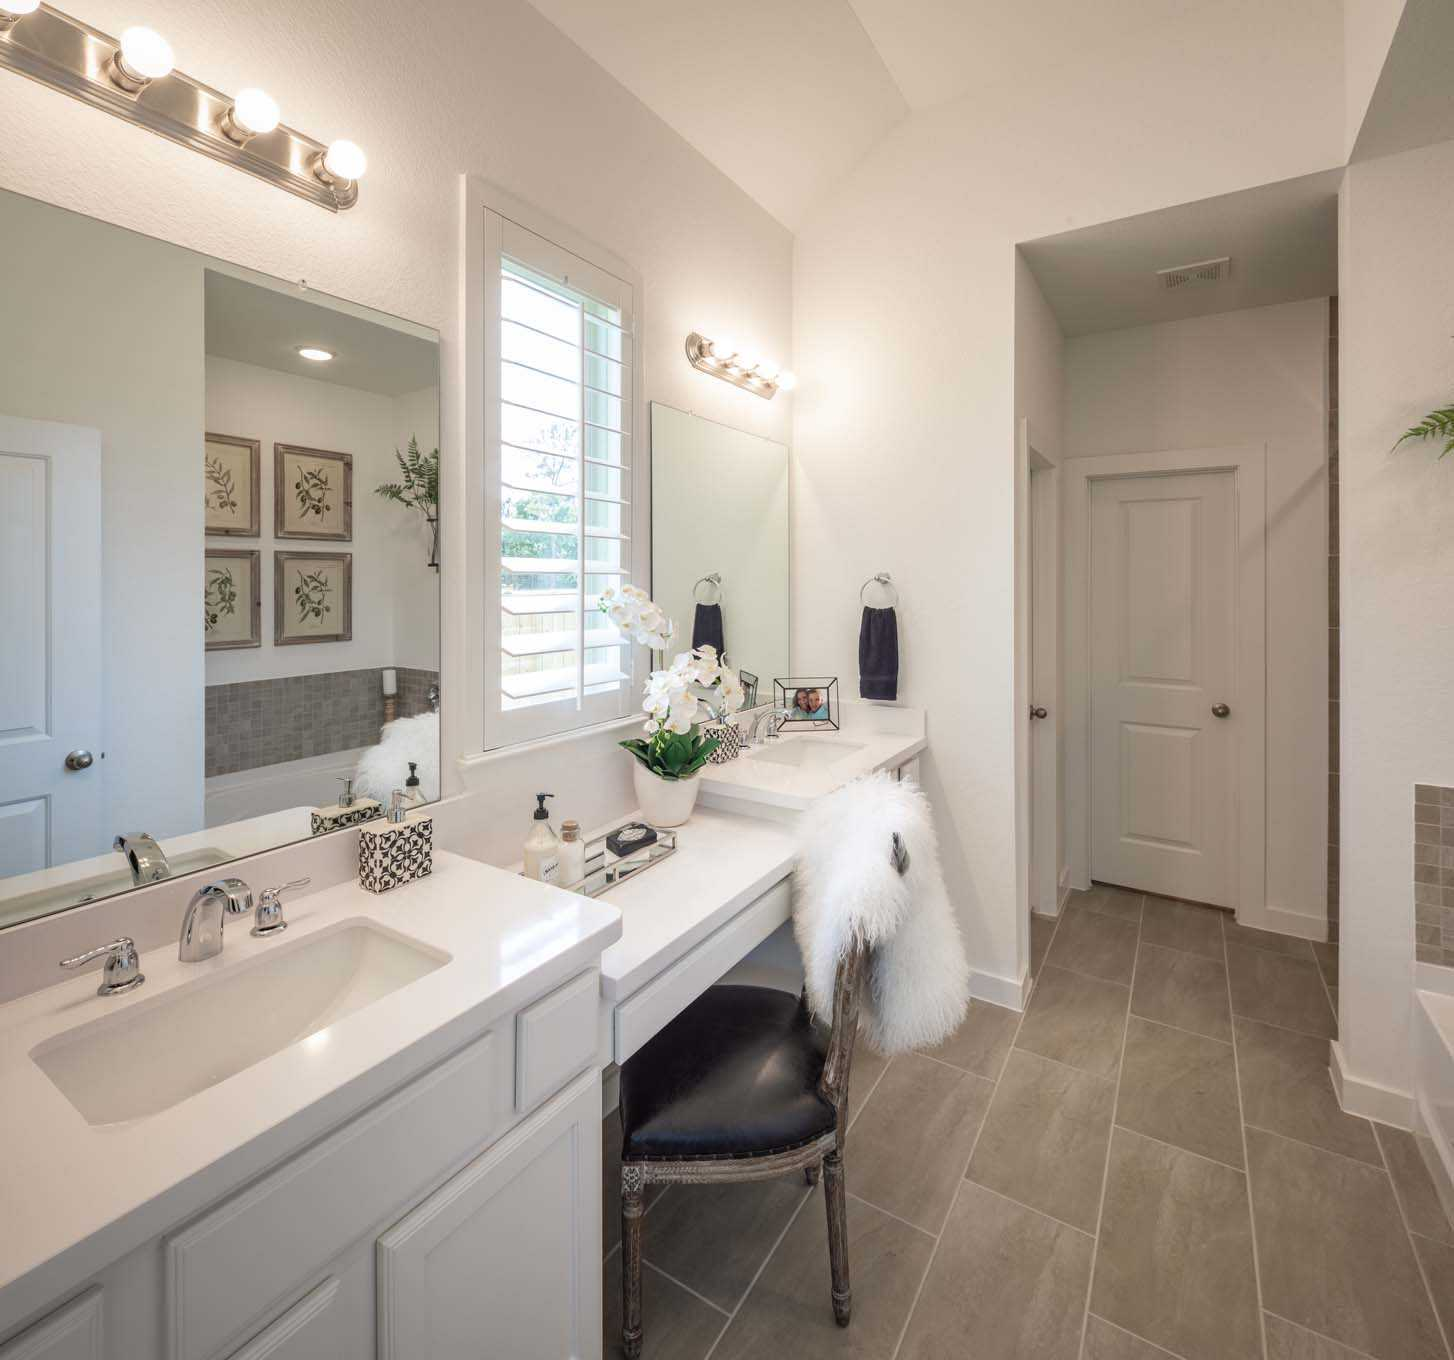 Bathroom featured in the Plan Amberley By Highland Homes in San Antonio, TX